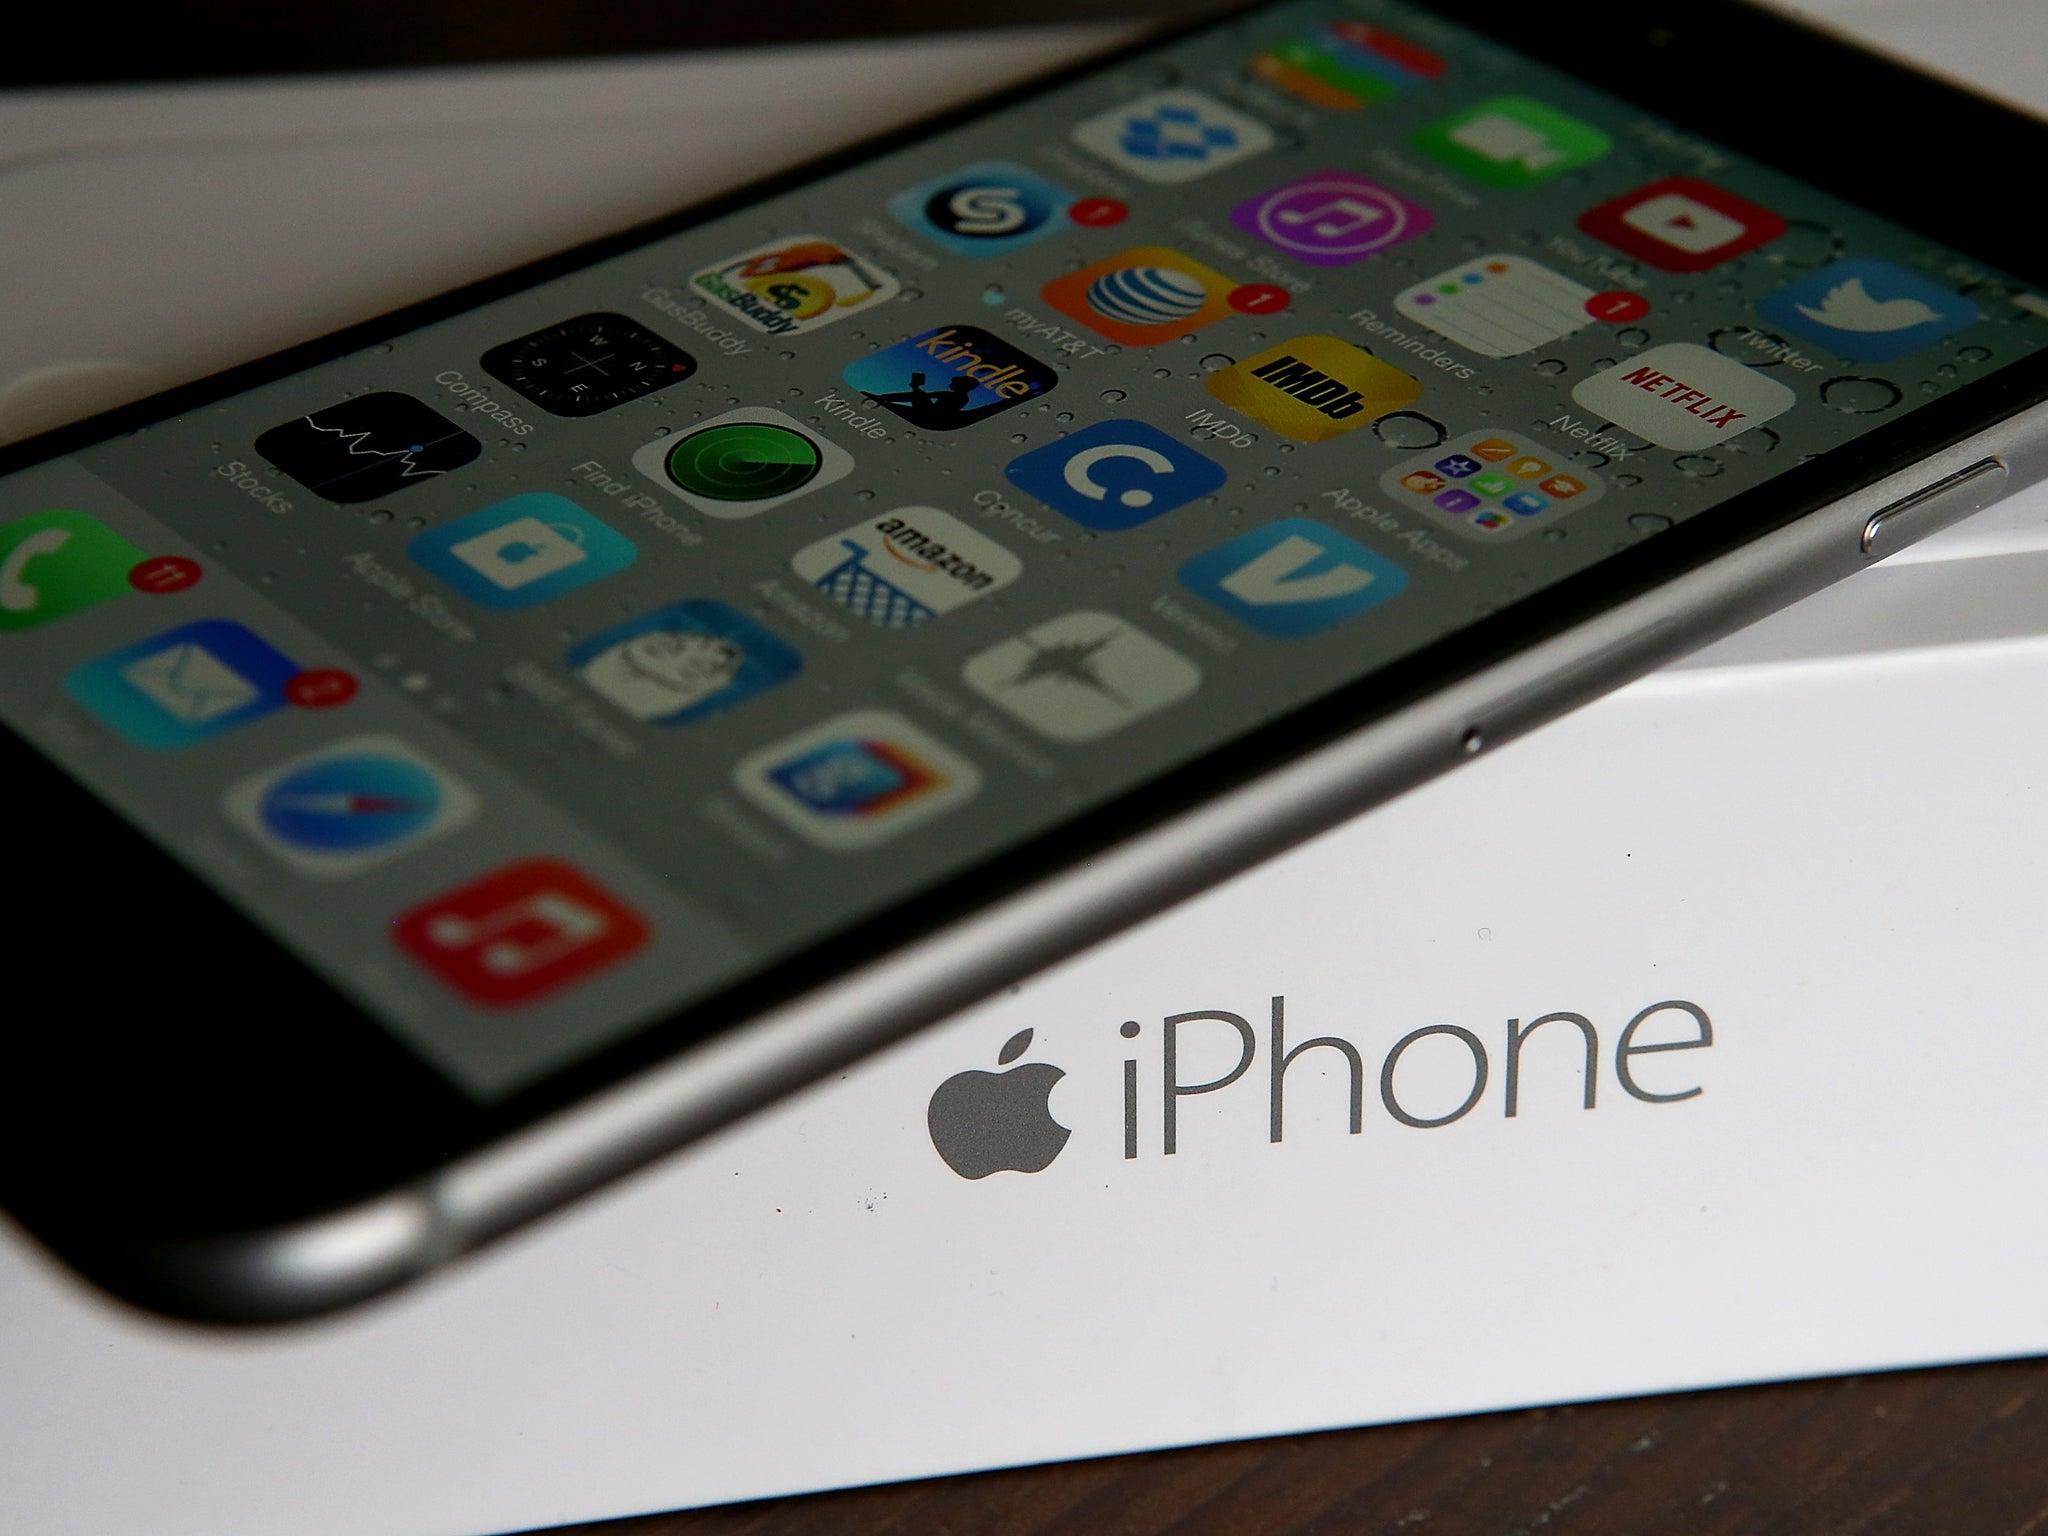 IPhone 7 Release Date Apple Event Likely To Be Held On September 8 Say Reports